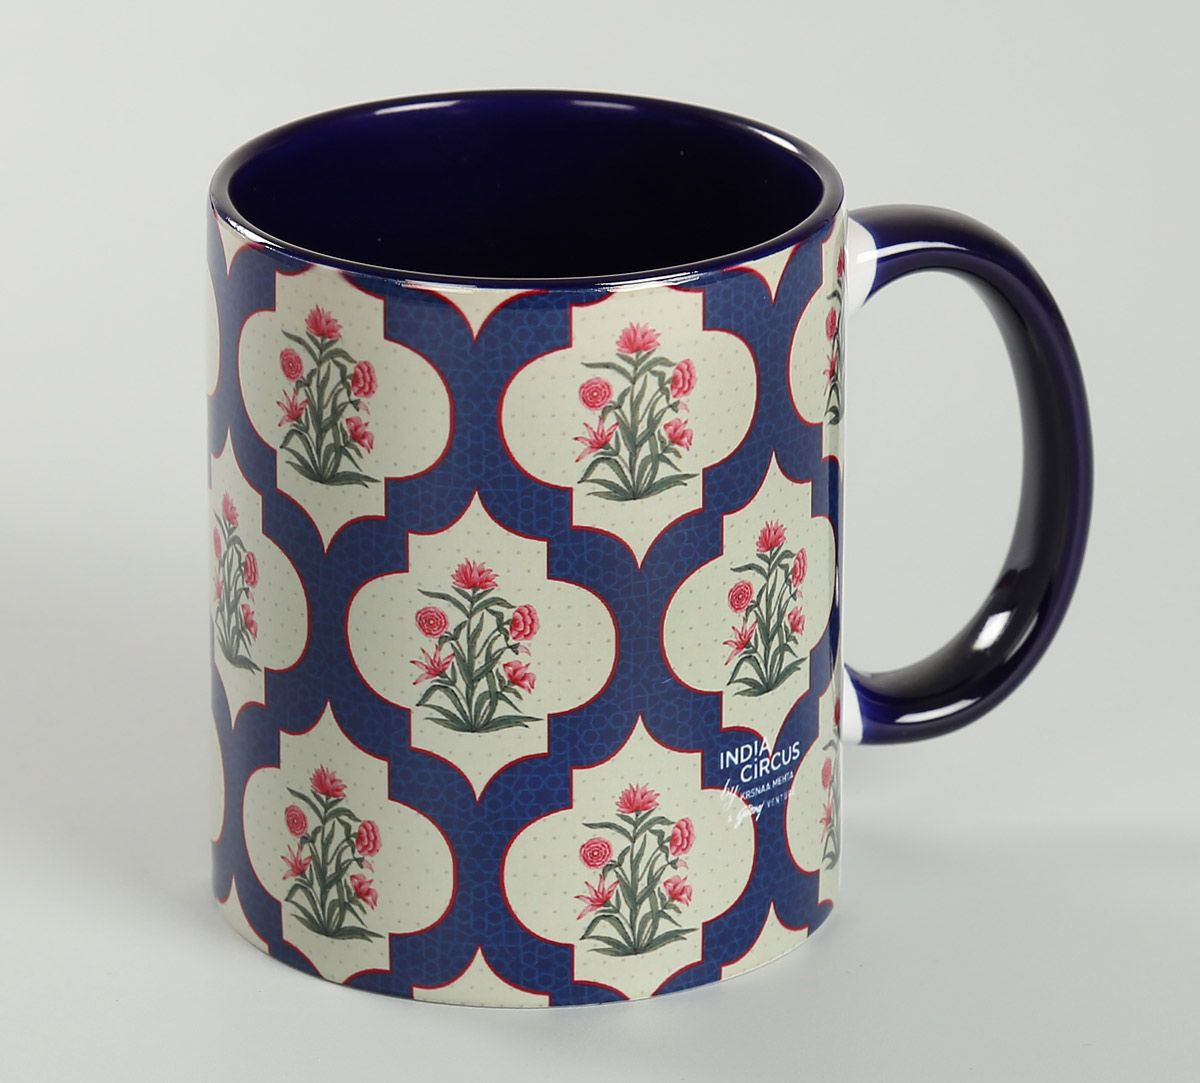 Great Deals on Stylish Coffee Mugs at India Circus